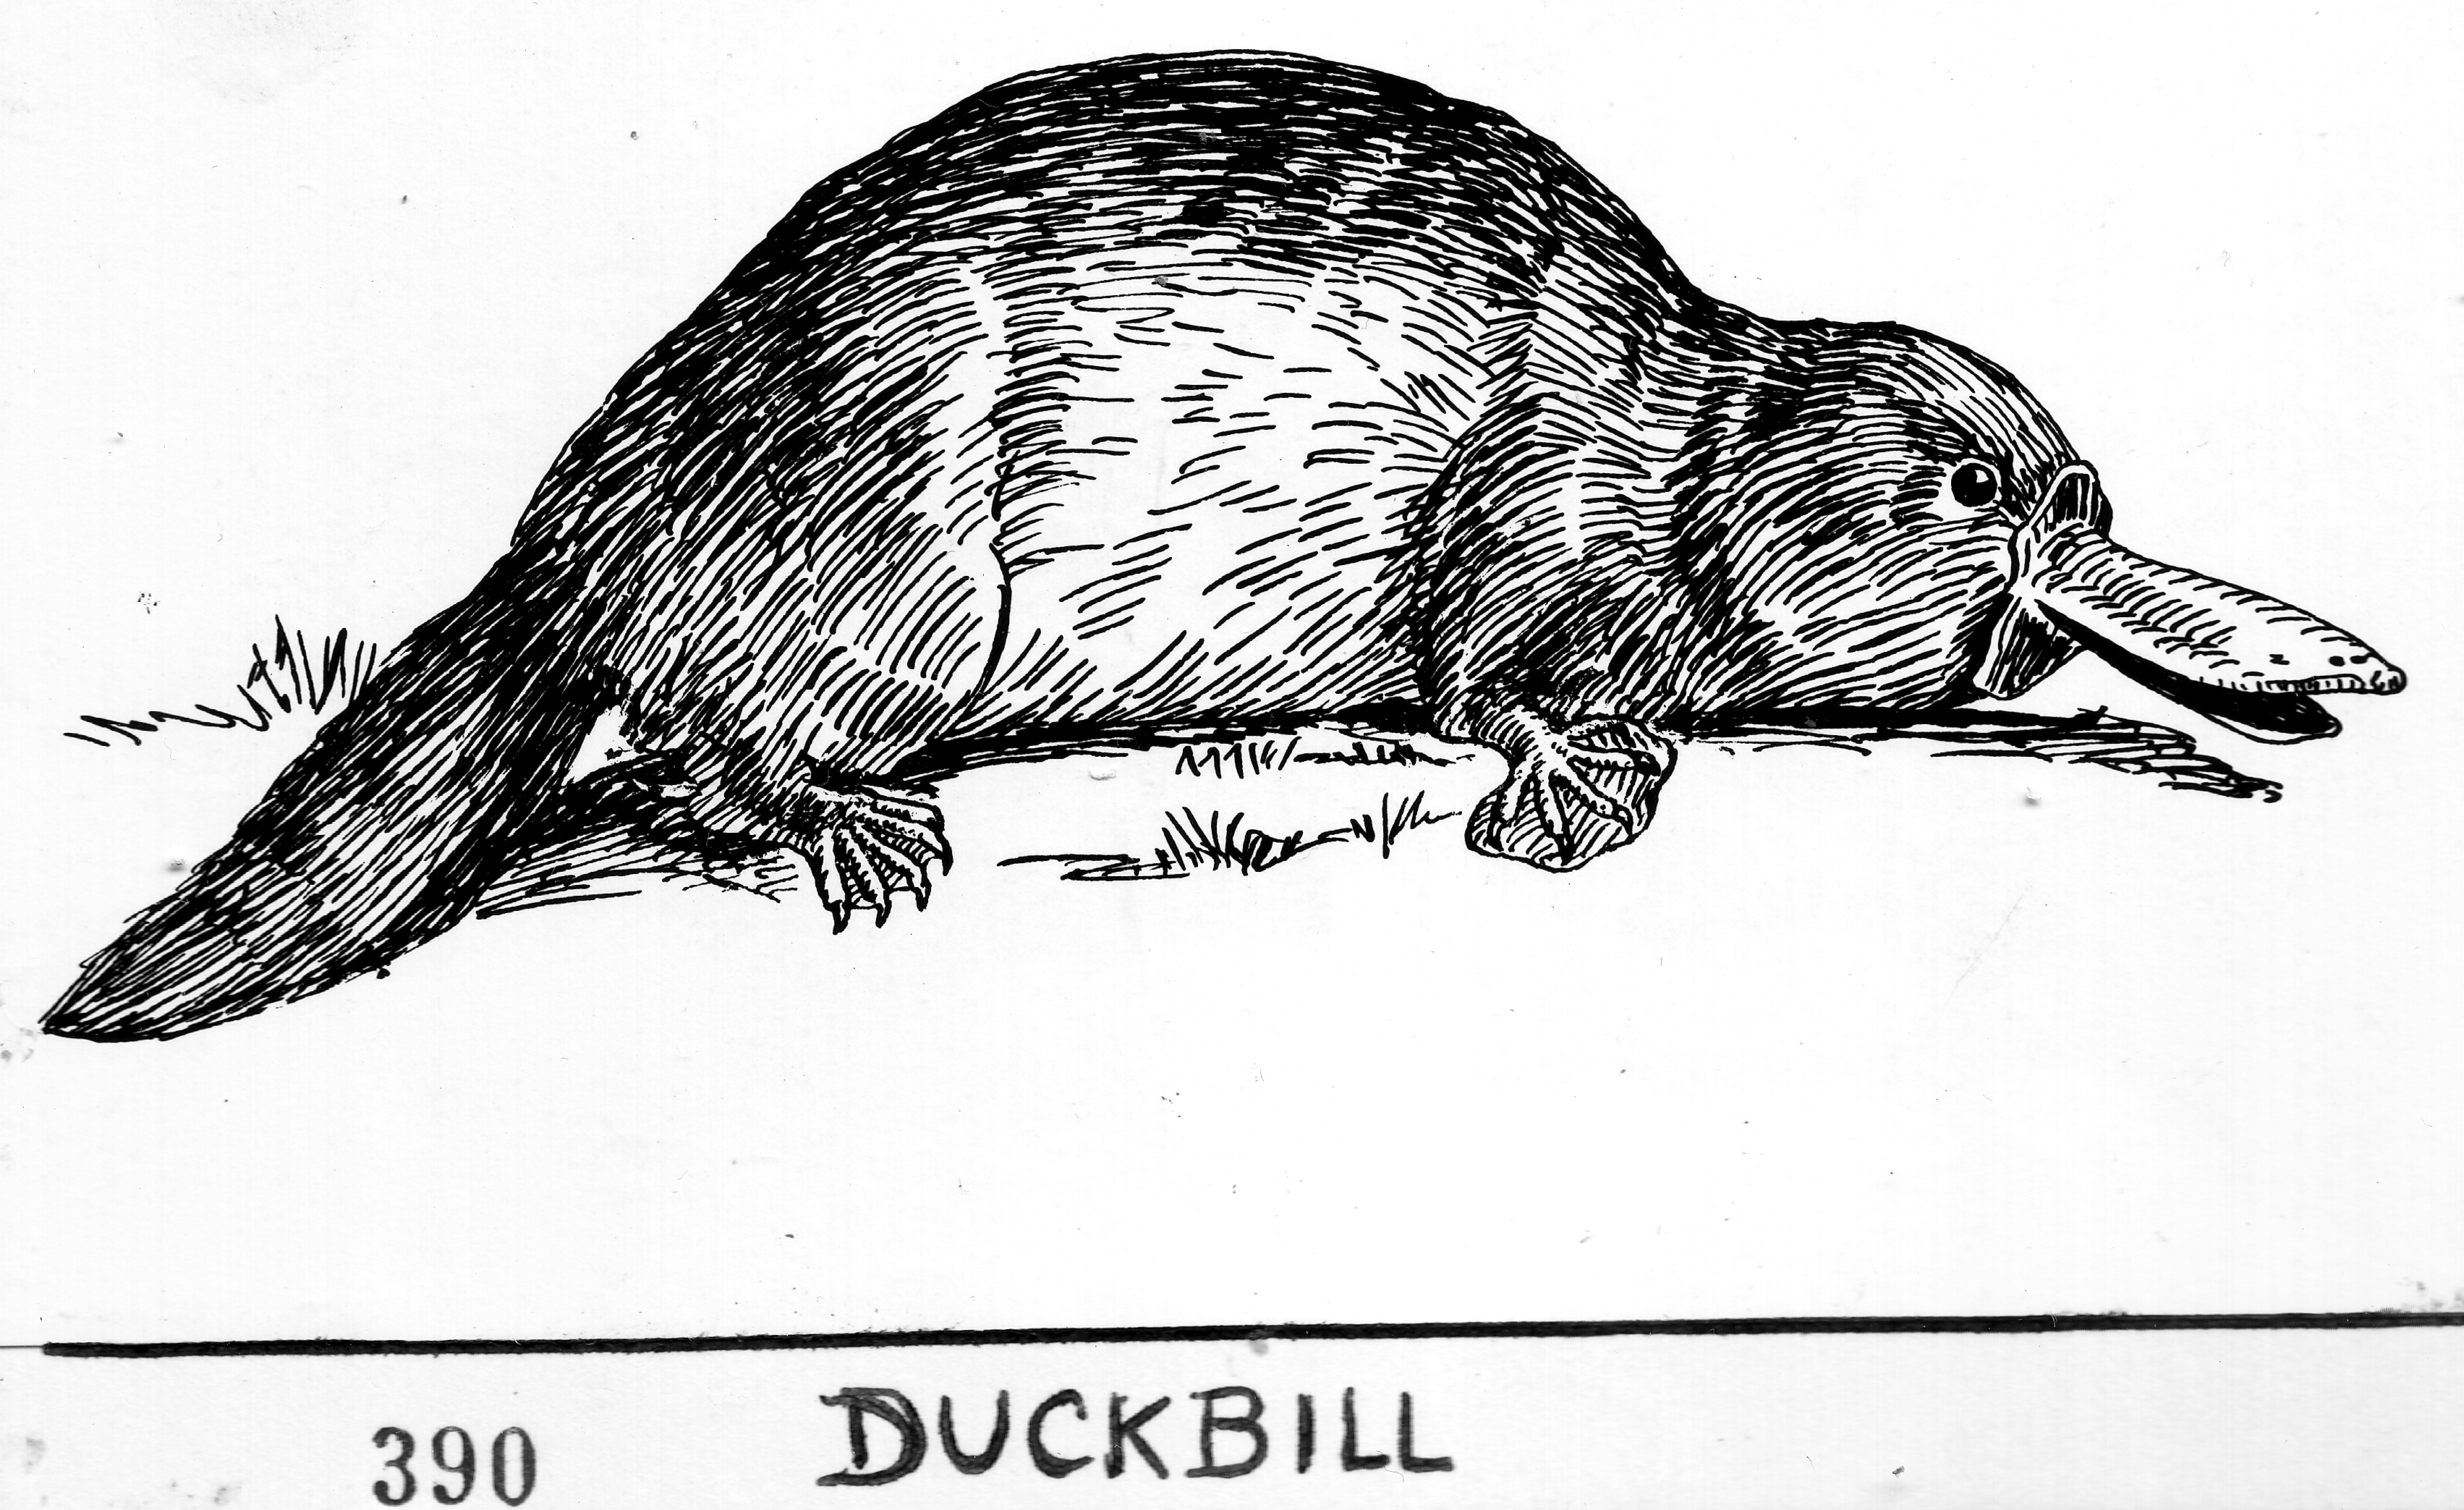 Duckbill_Platypus_(line_art)_(PSF-D280000_(cropped)).png